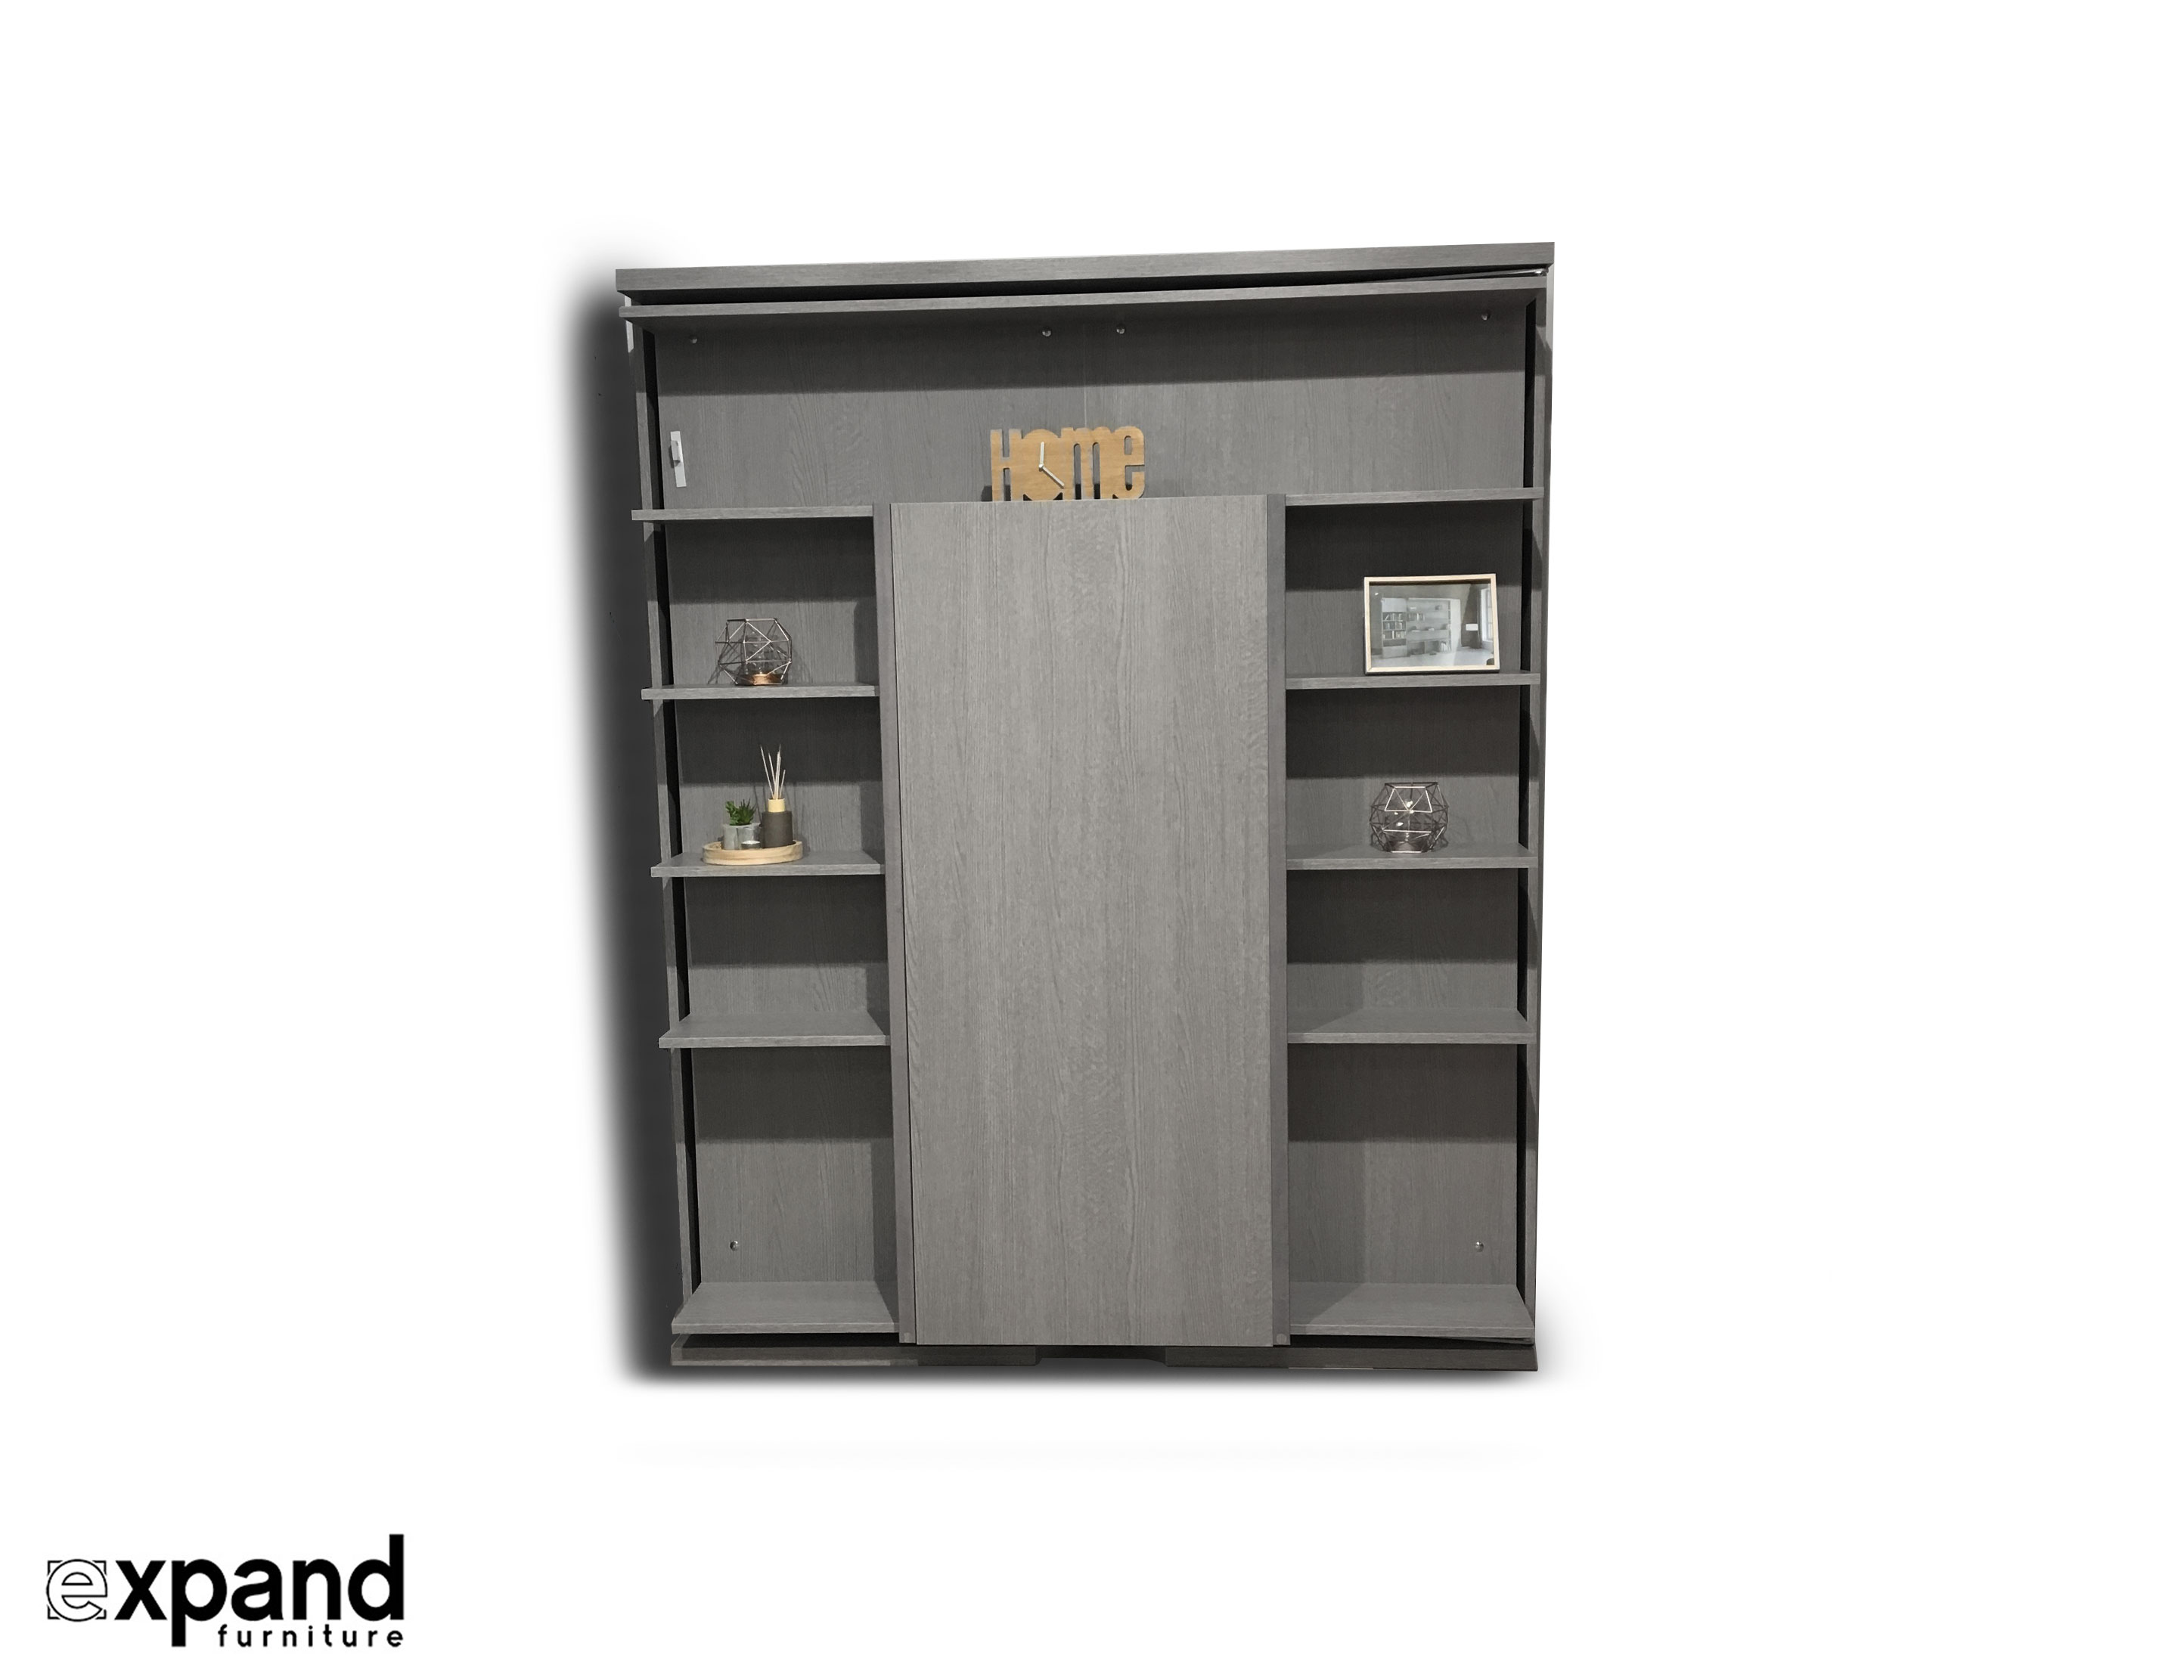 Revolving Bookcase Italian Wall Bed Expand Furniture